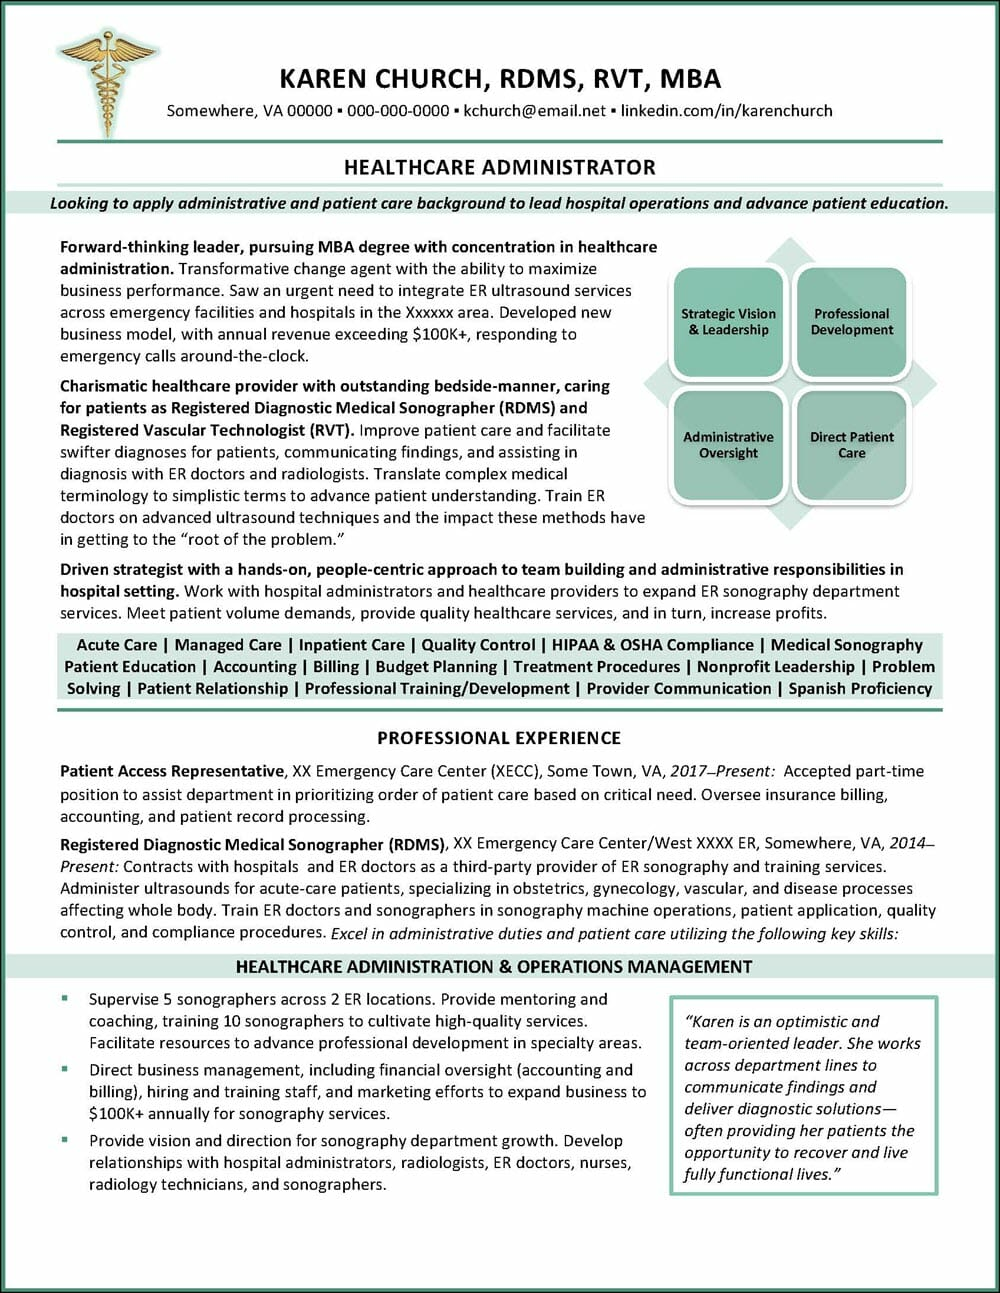 healthcare administrator resume example distinctive career services administration Resume Healthcare Administration Resume Samples